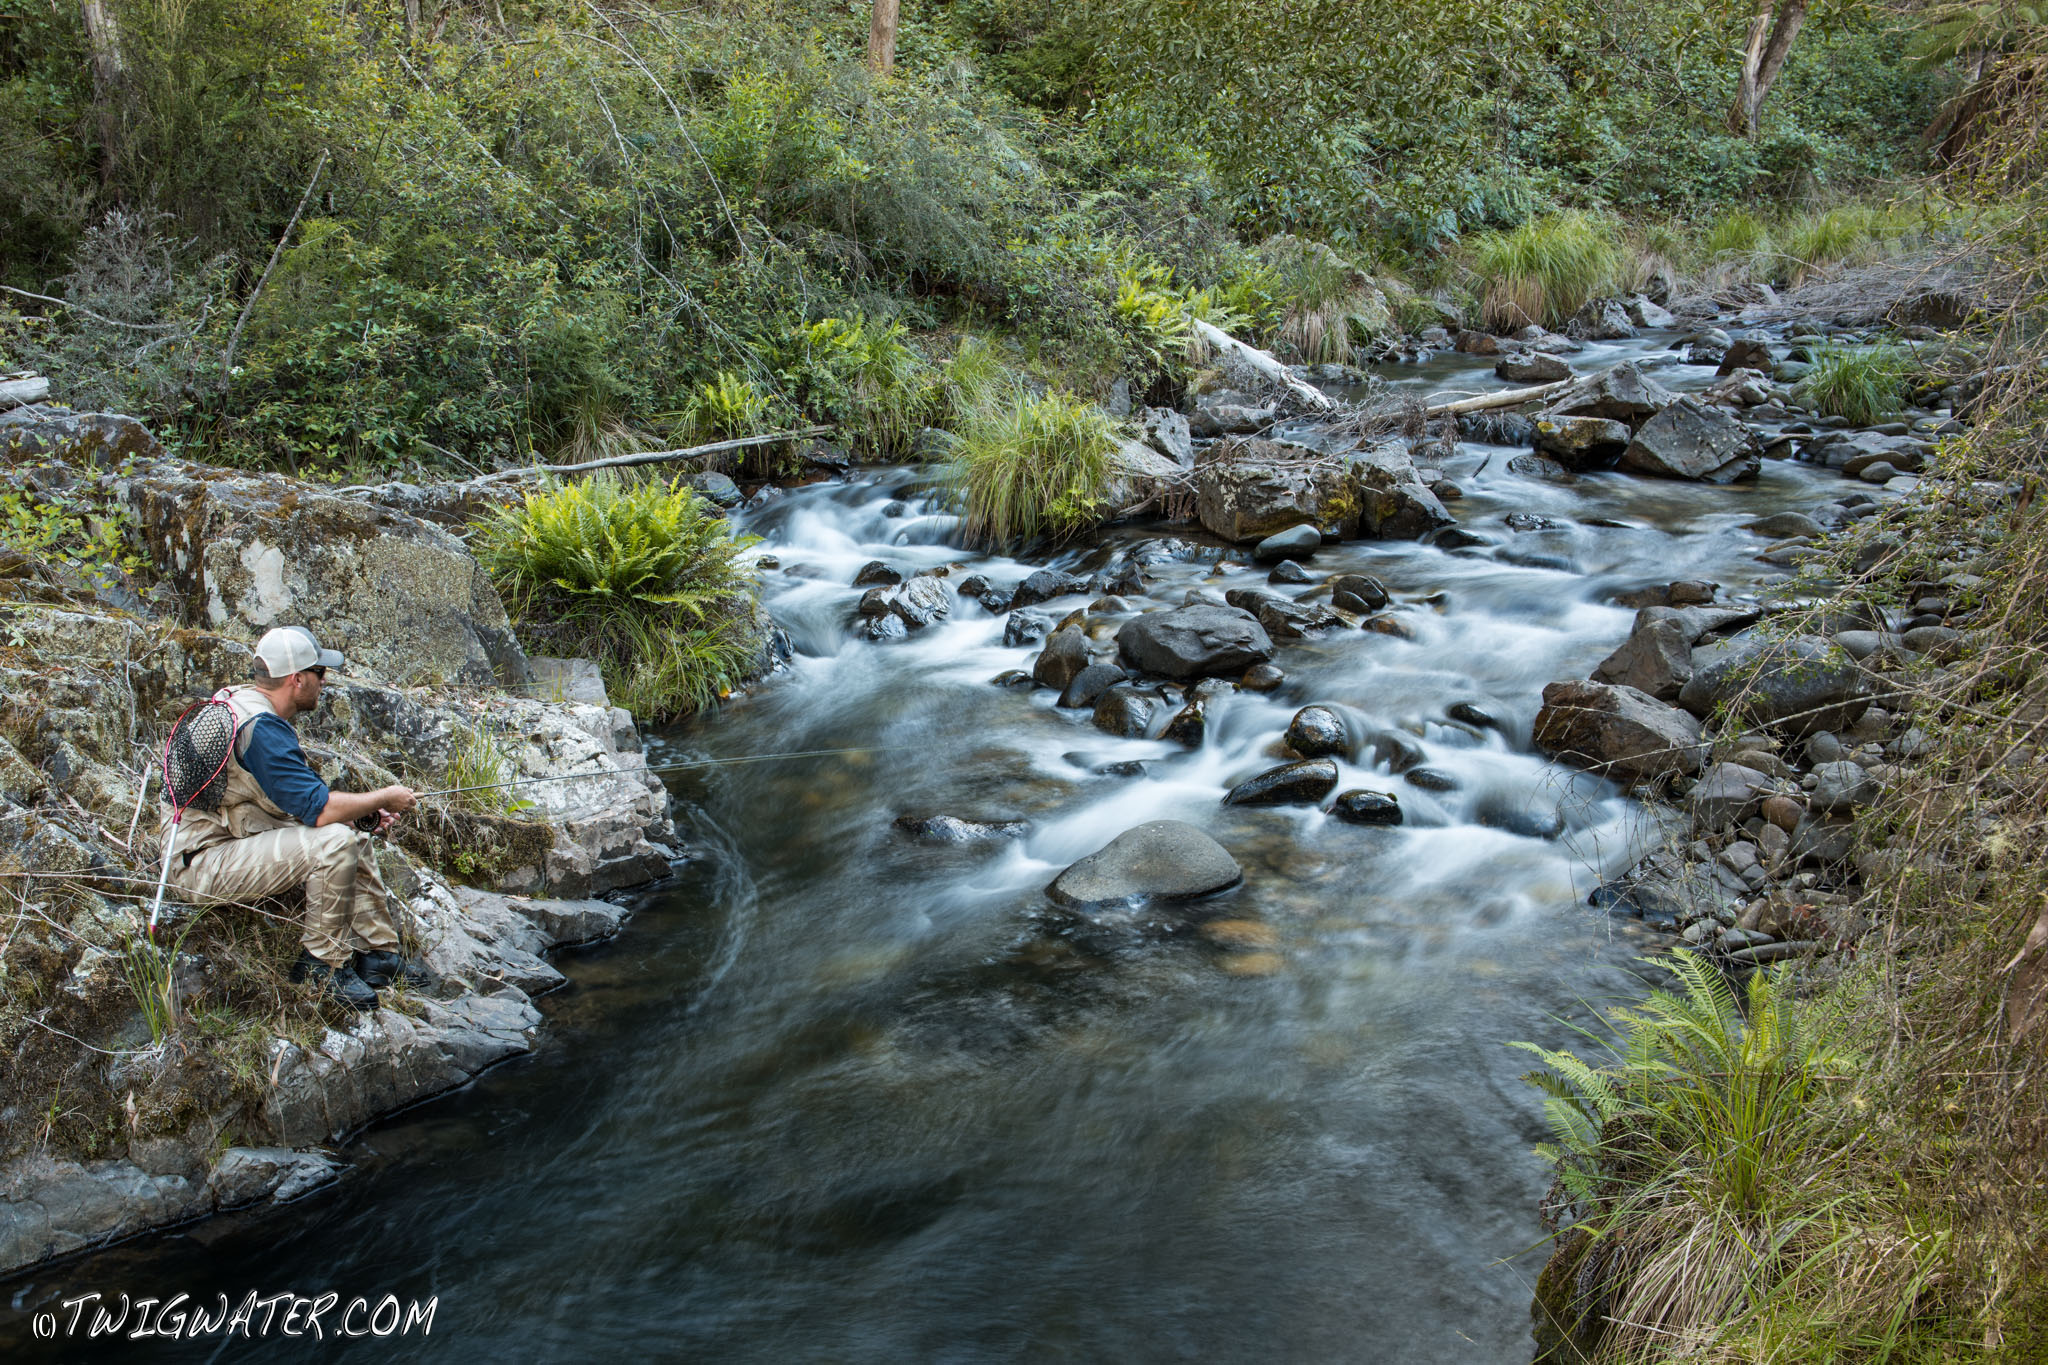 Snowy mountains trout stream on twigwater.com